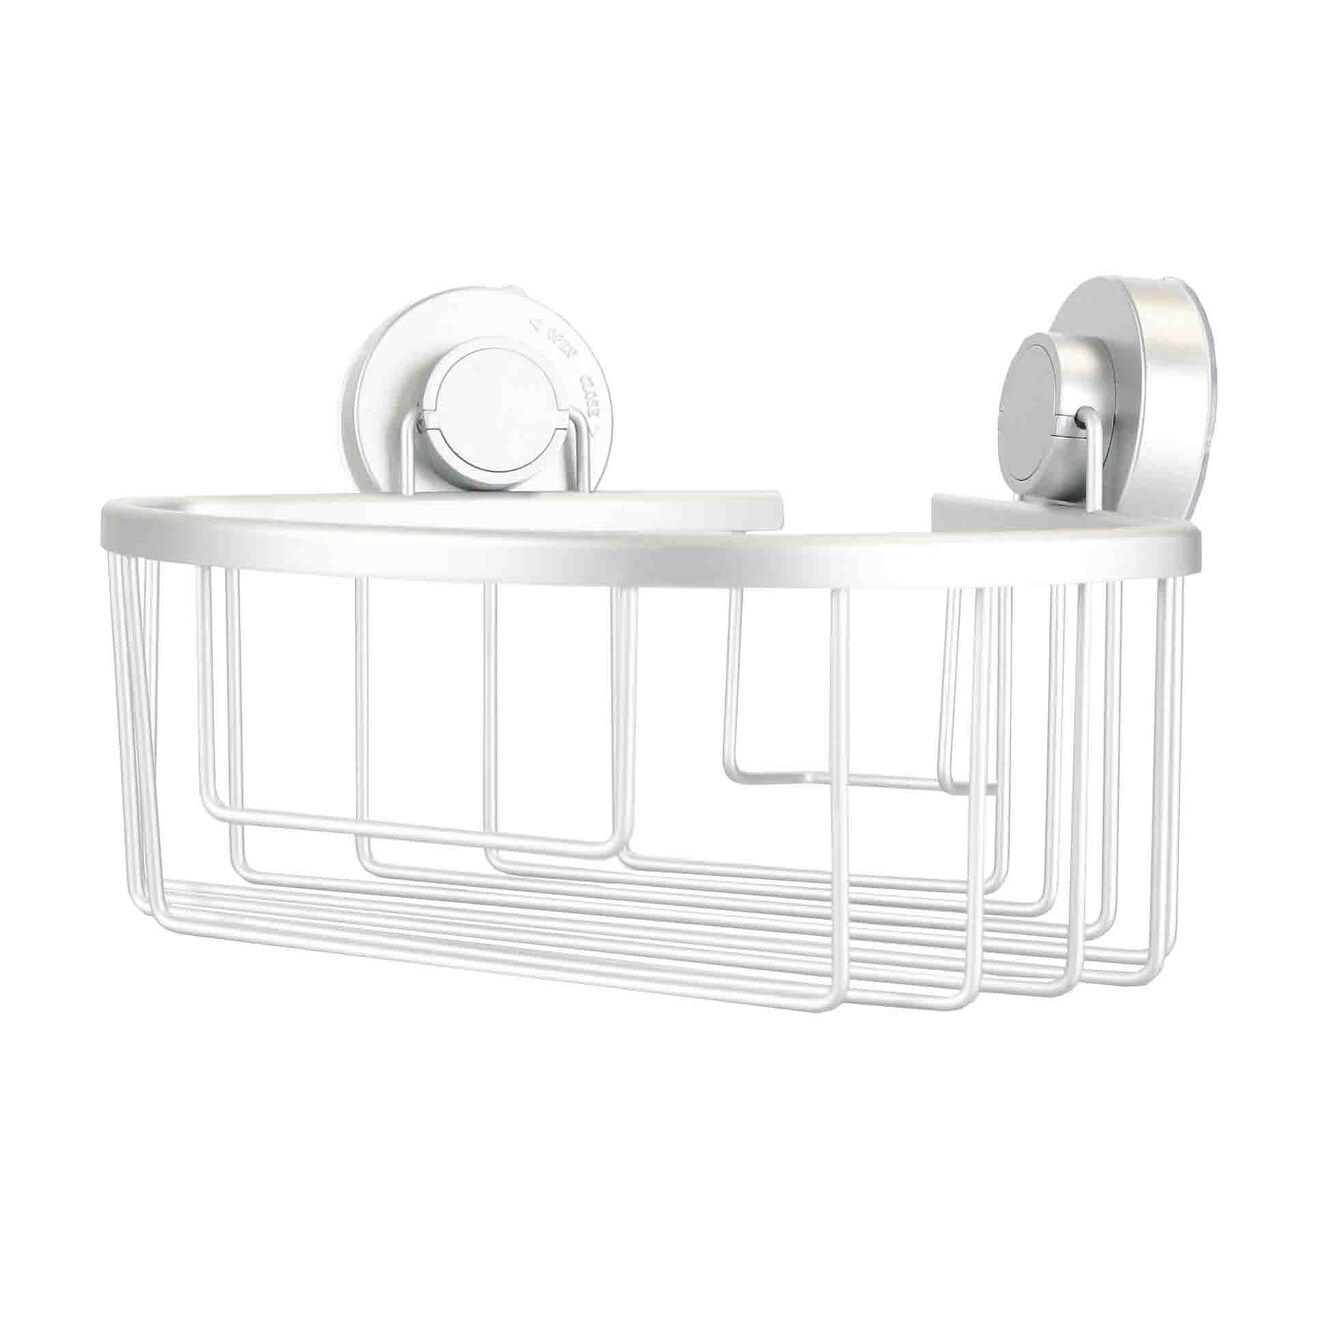 Aluminum Corner Bath Caddy With Power Grip Suction Cups Silver